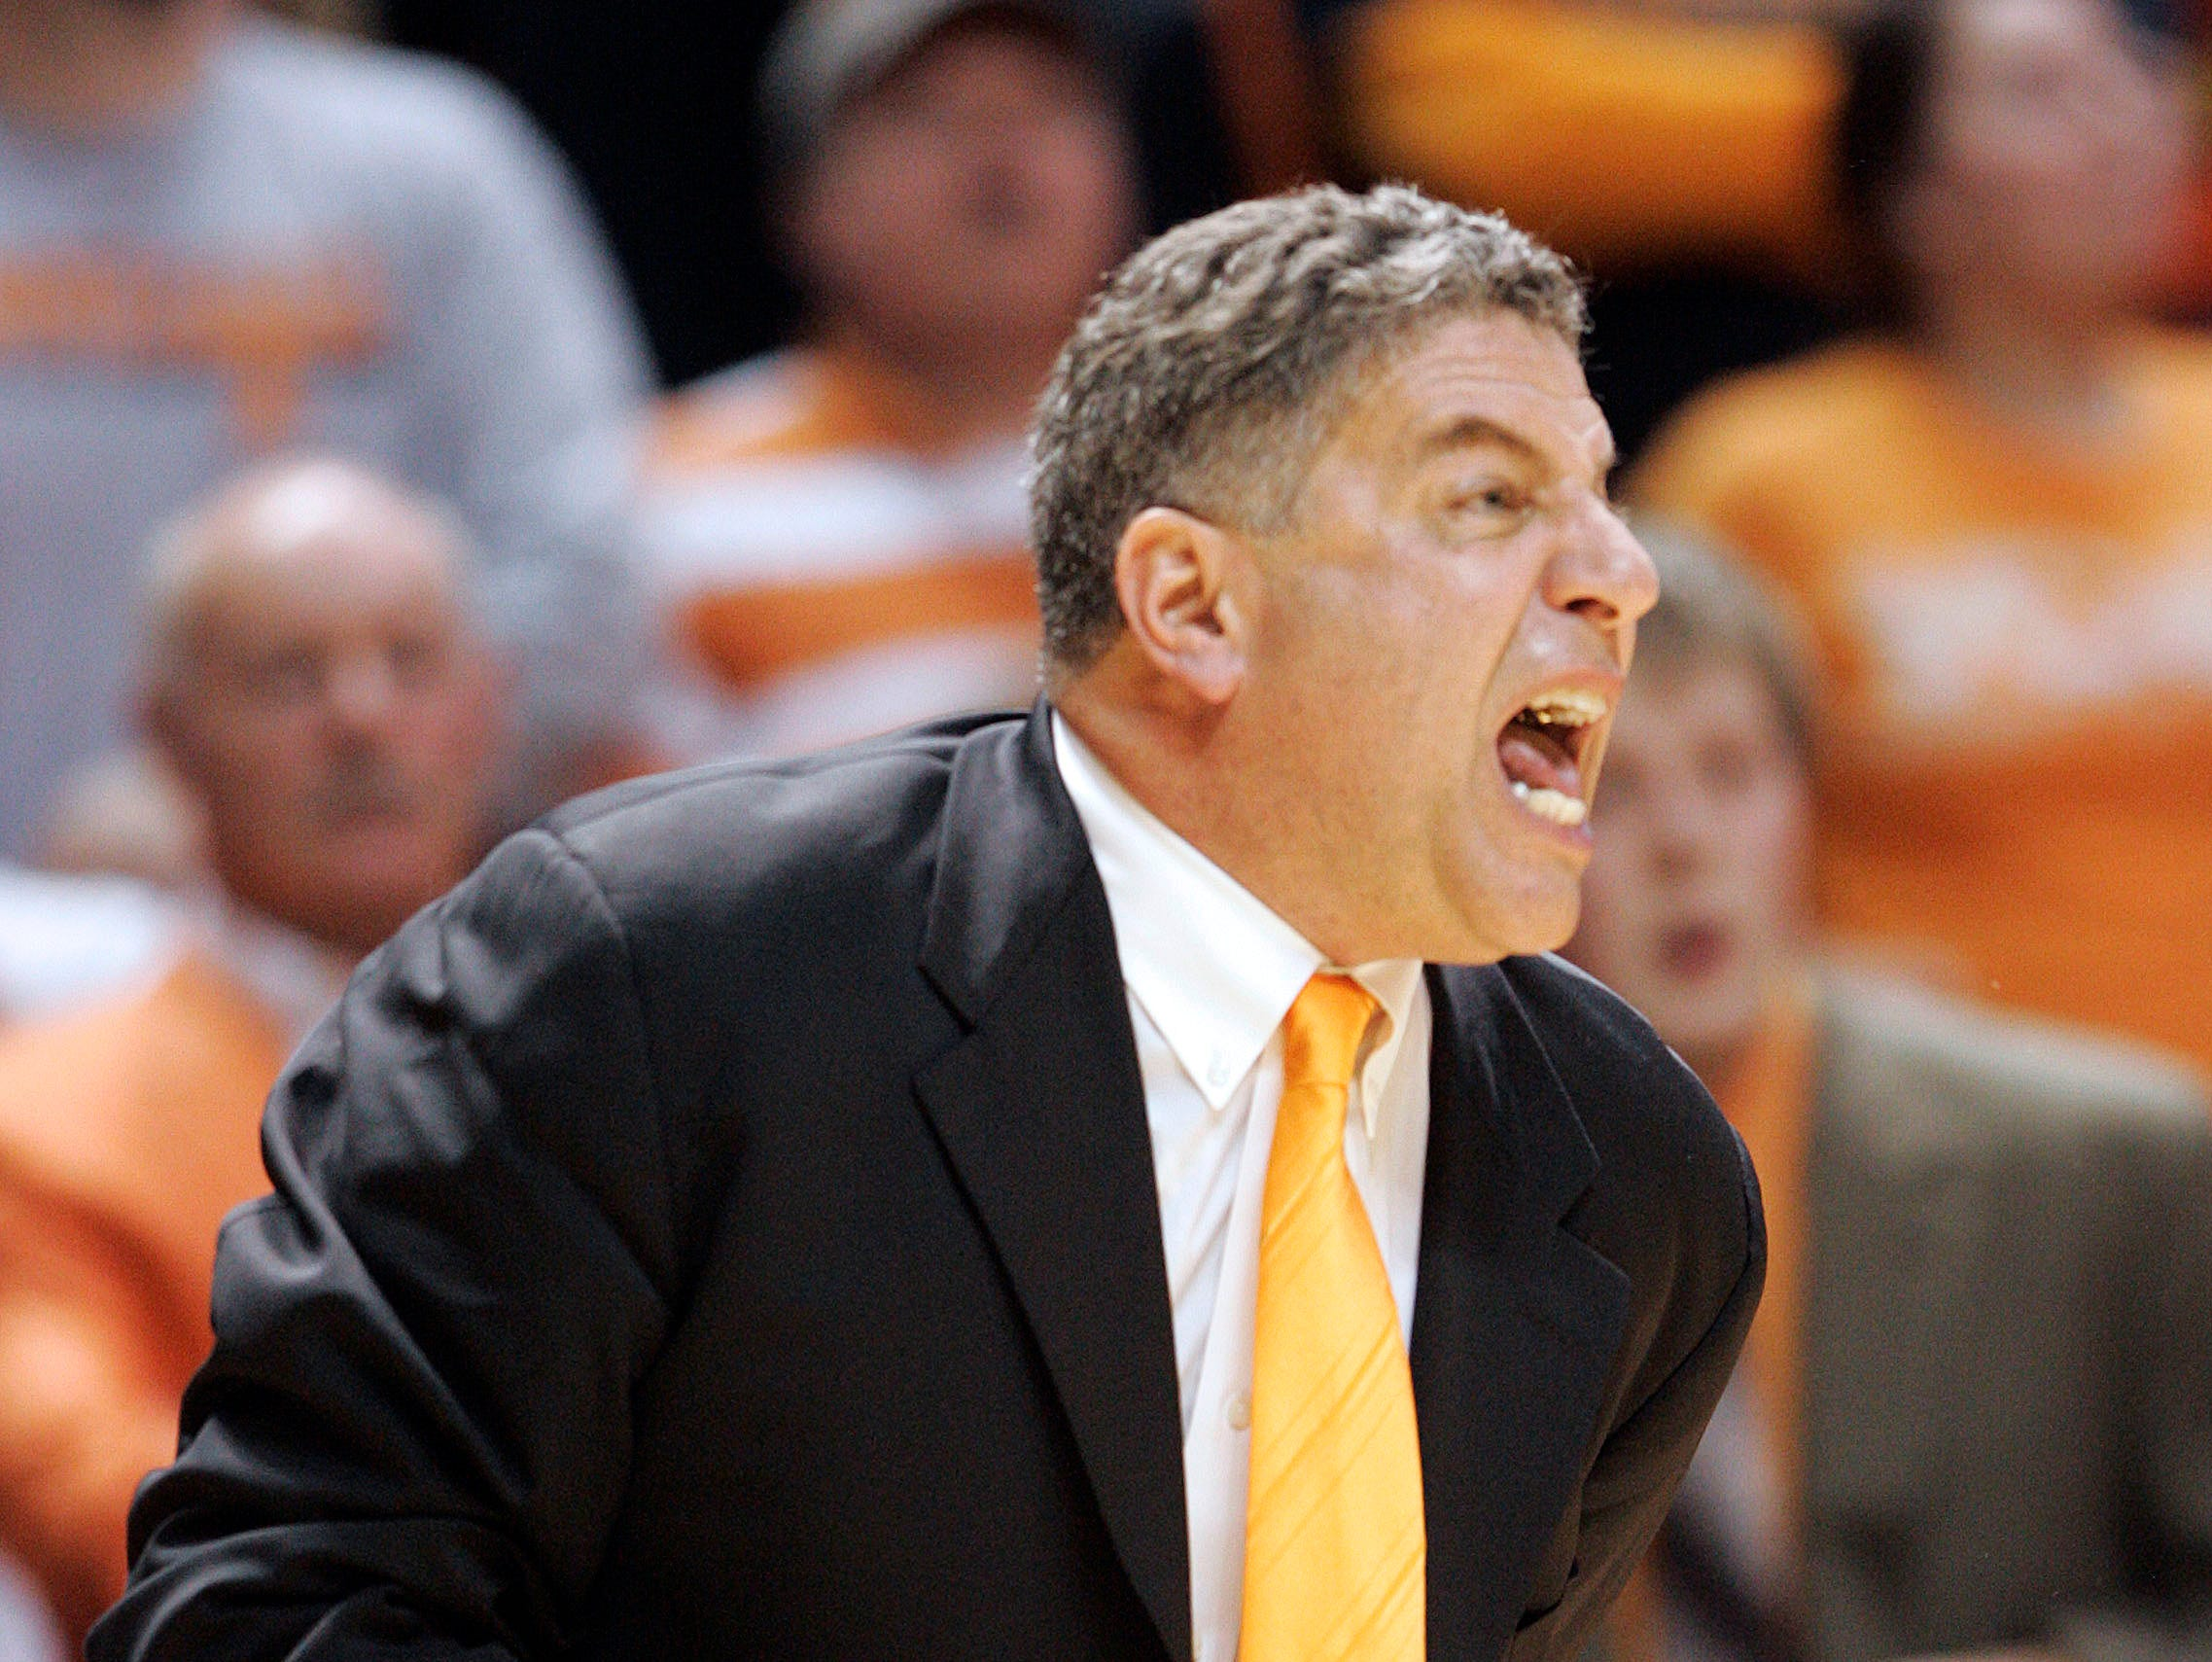 Tennessee head coach Bruce Pearl yells to his team during the second half of an NCAA college basketball game against Kansas, Sunday, Jan. 10, 2010, in Knoxville, Tenn. Tennessee won 76-68.